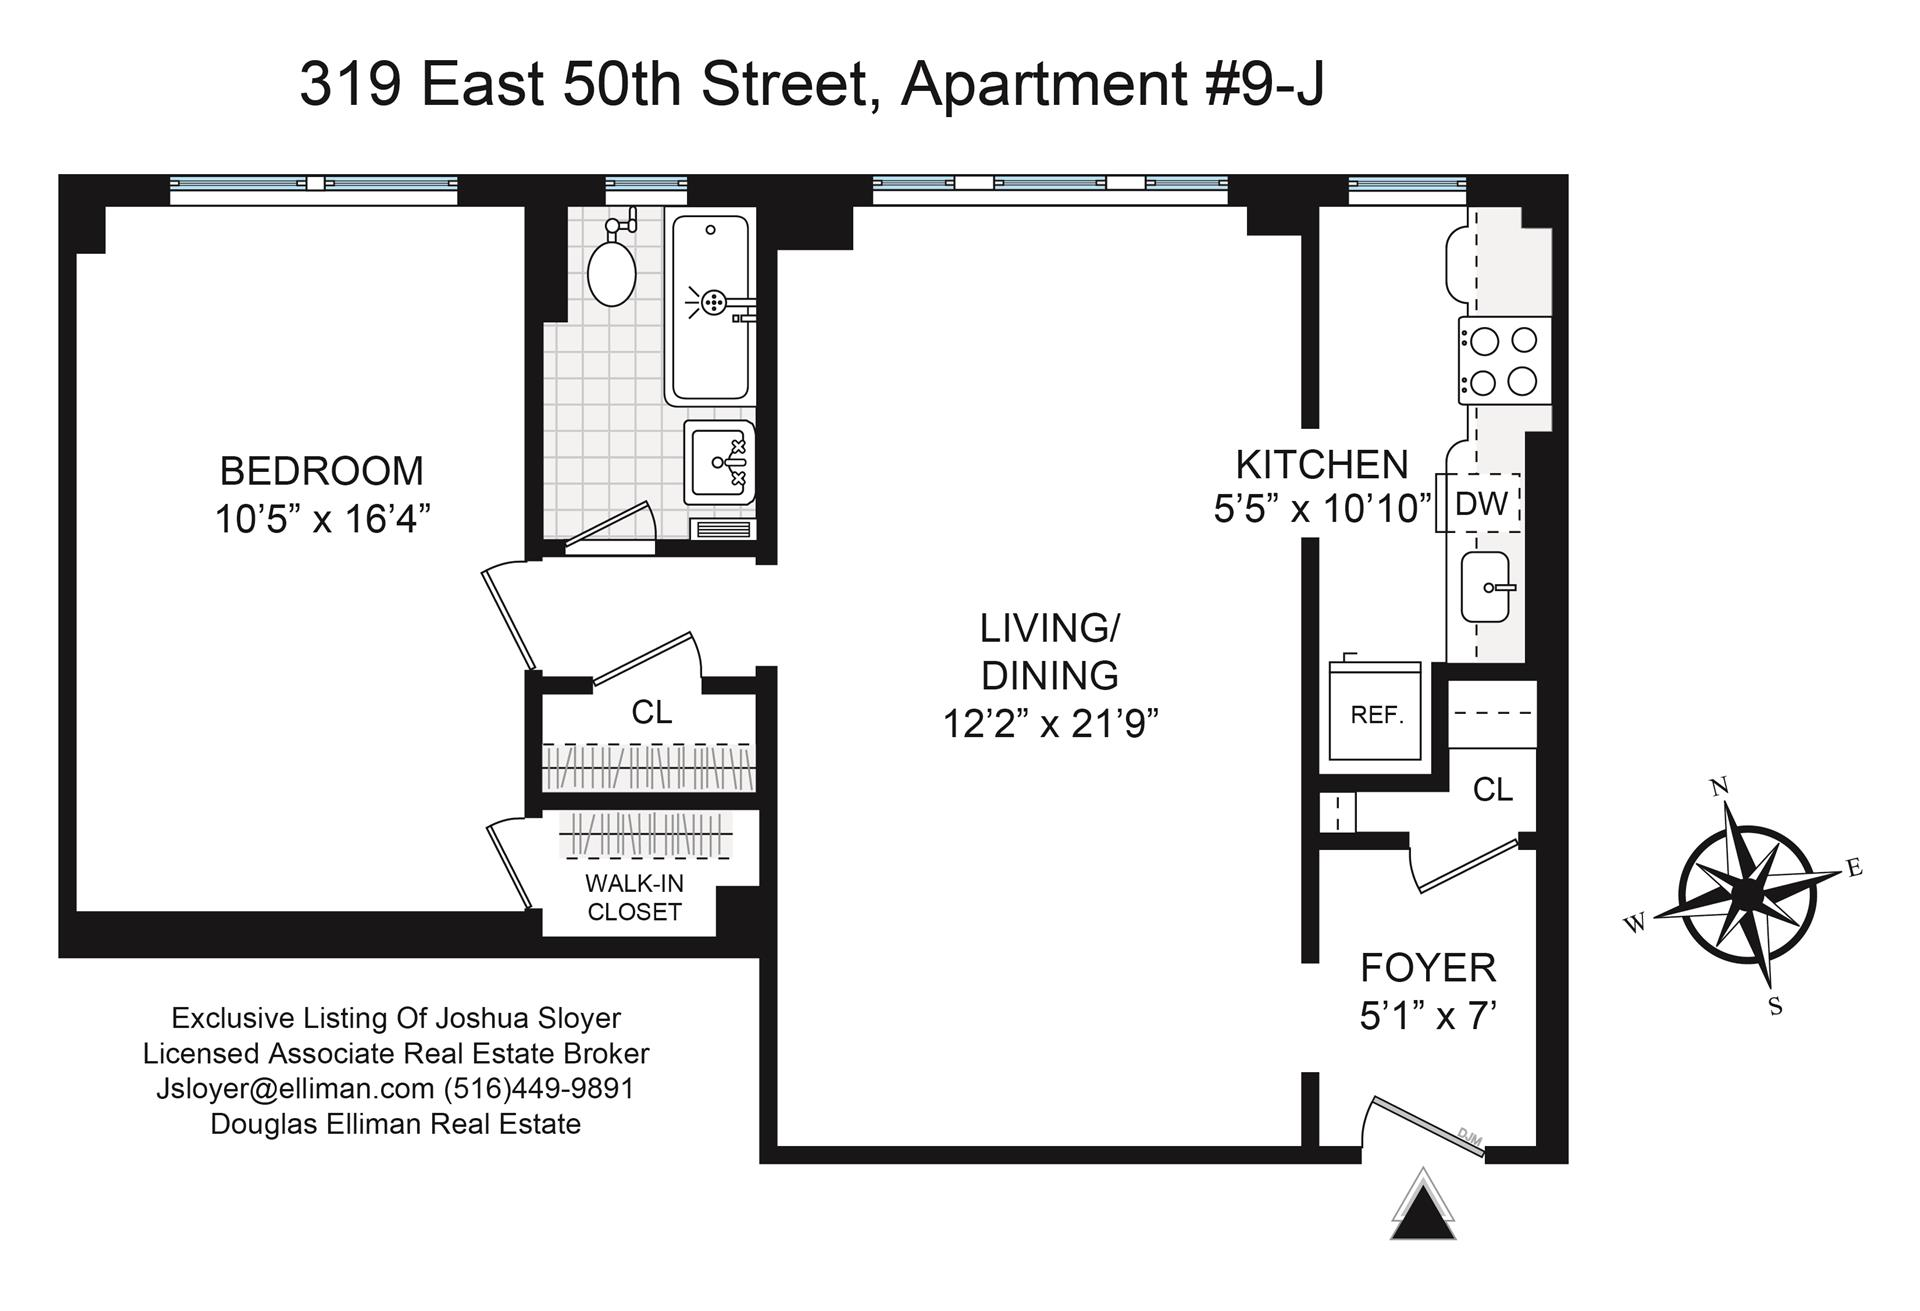 Floor plan of Beekman Hill Apts, 319 East 50th St, 9J - Turtle Bay, New York